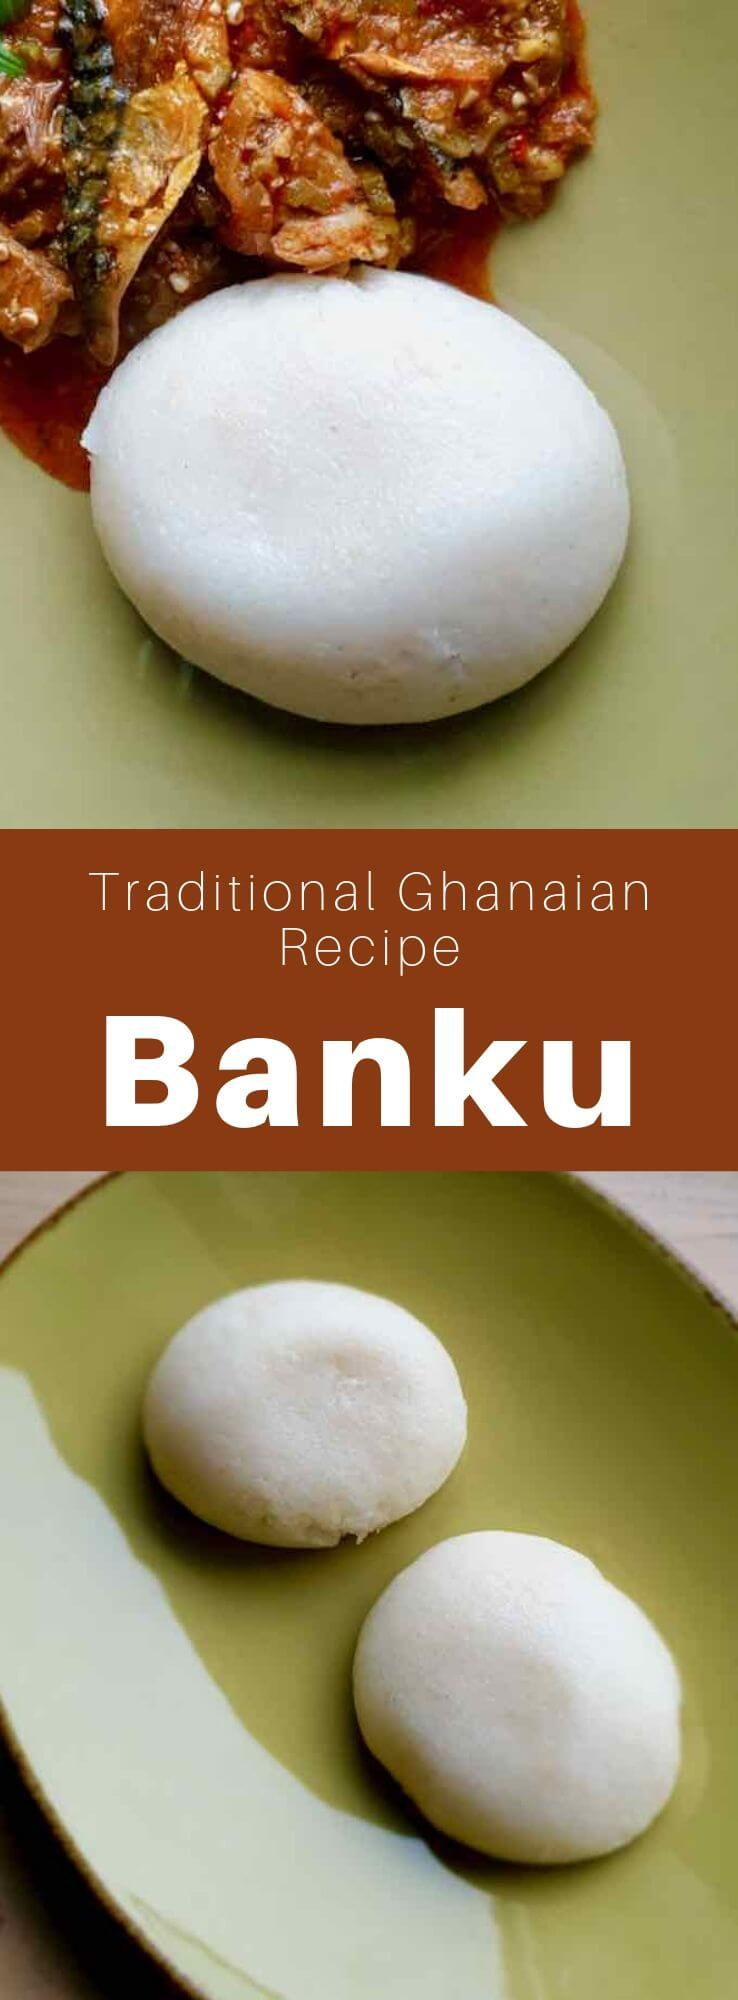 Banku is a traditional Ghanaian recipe known for its sour taste, which comes from several days of fermentation of the corn to make corn dough. #Ghana #GhanaianCuisine #GhanaianFood #GhanaianRecipe #AfricanCuisine #AfricanFood #AfricanRecipe #WorldCuisine #196flavors